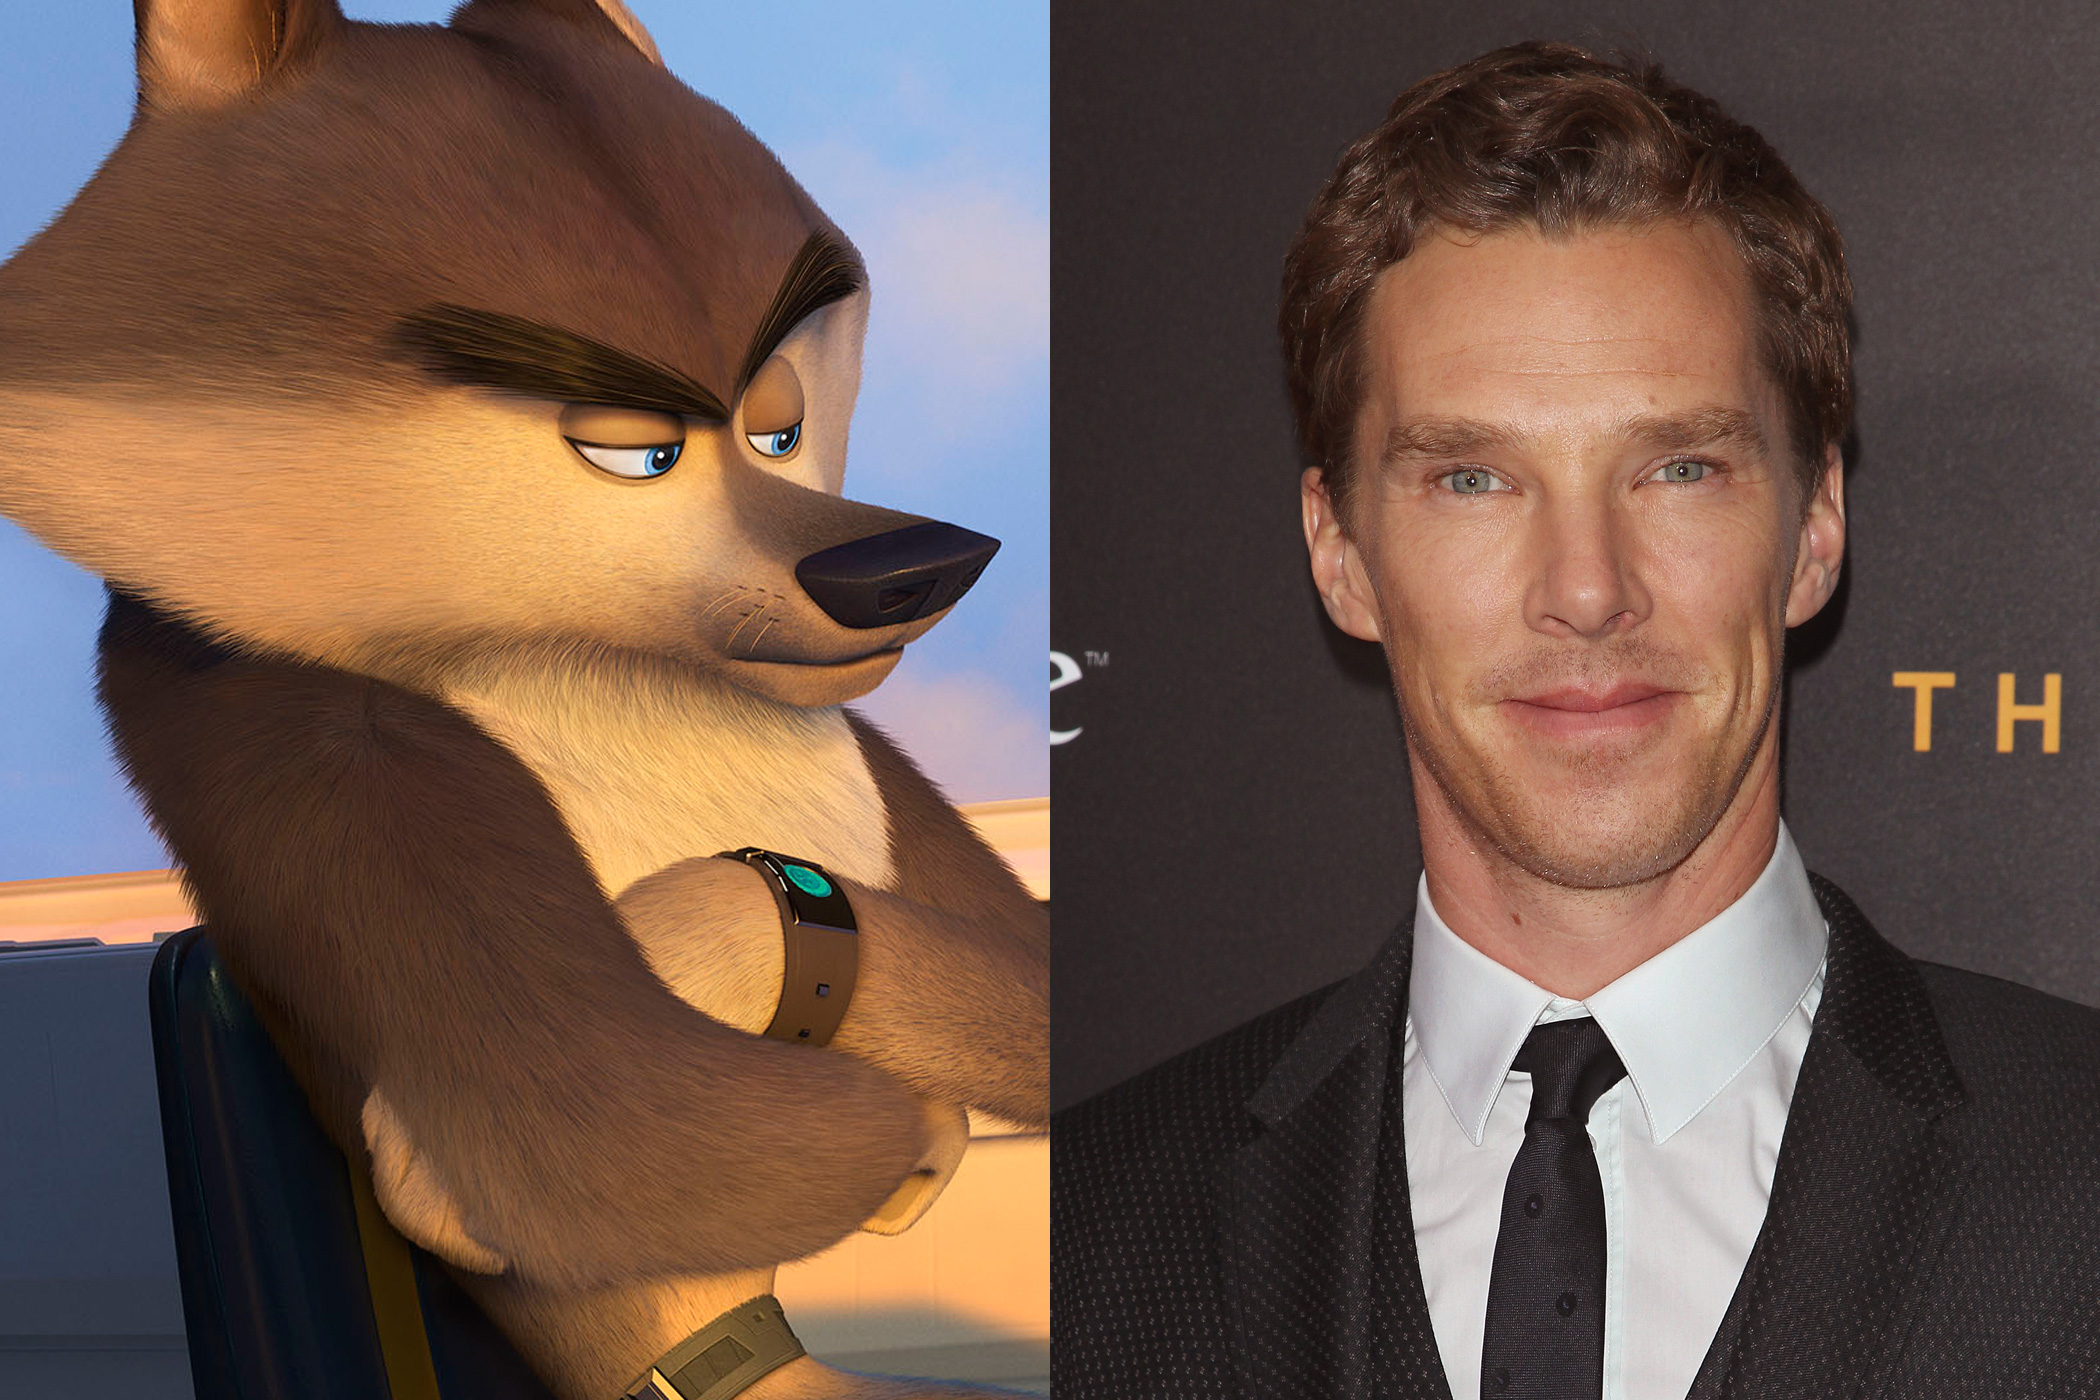 Even though Benedict Cumberbatch can't pronounce the word penguin, he joins the cast of <i>The Penguins of Madagascar</i> as the voice of Agent Classified.